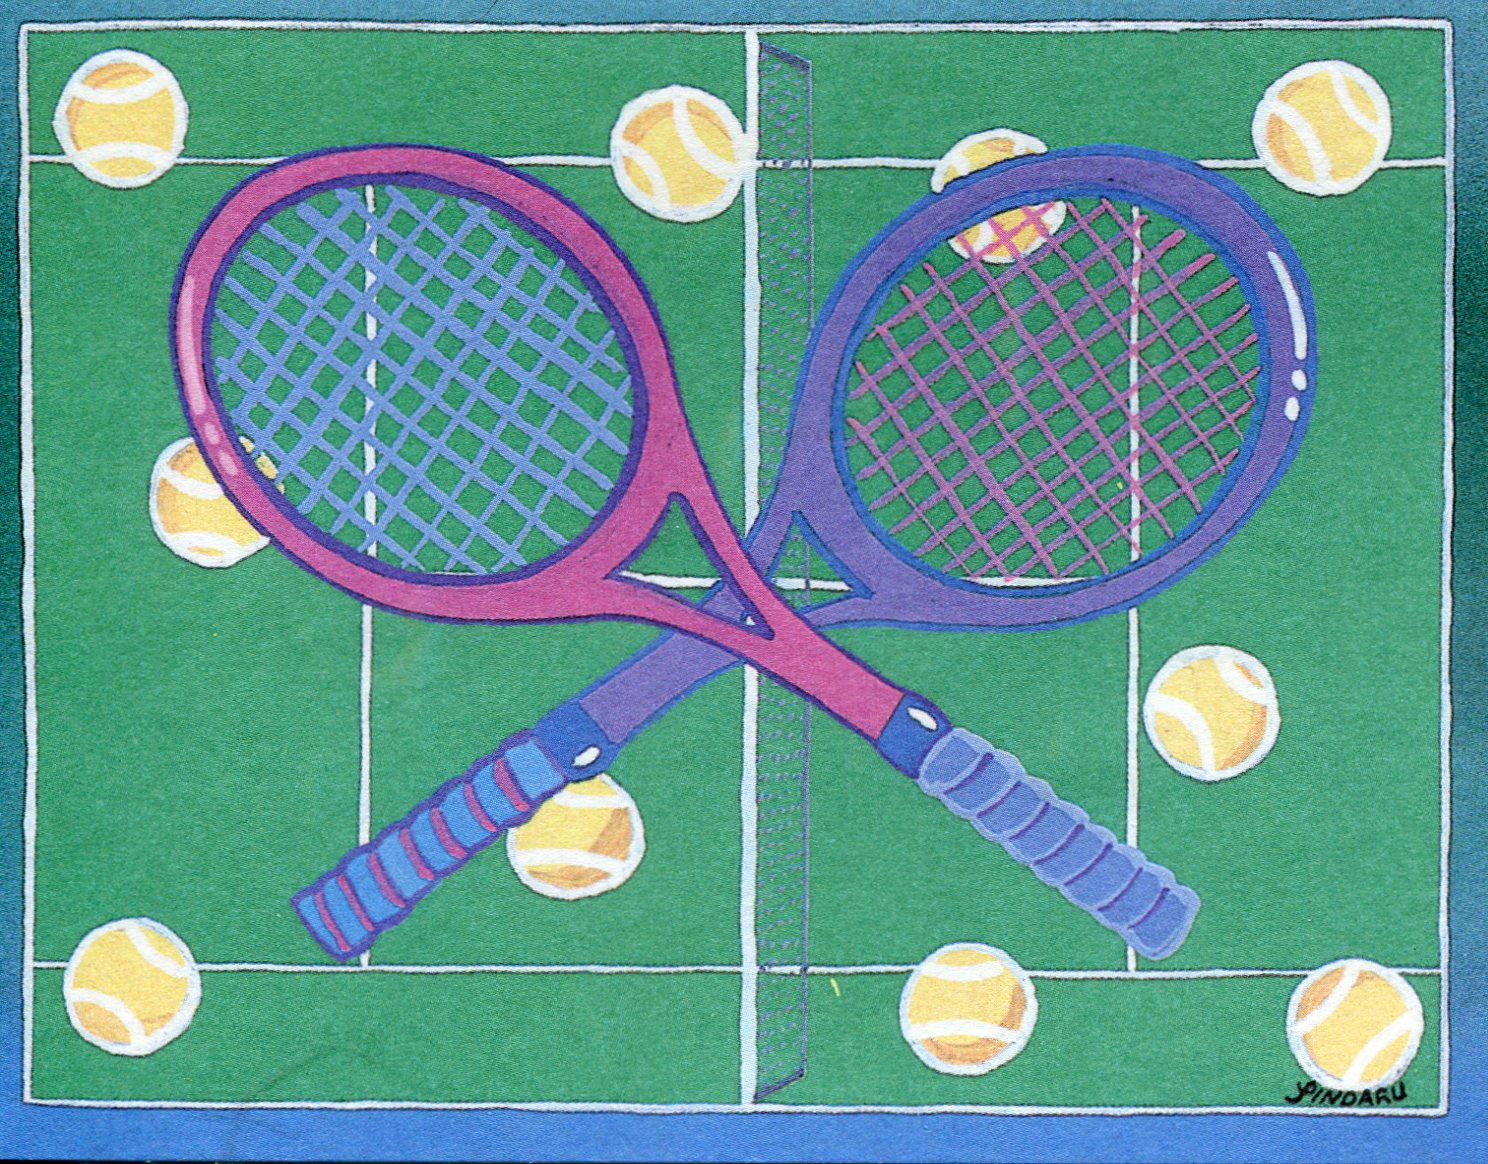 Tennis menace gifts jewelry tennis greeting cards envelopes 8 crossed racquets m4hsunfo Choice Image